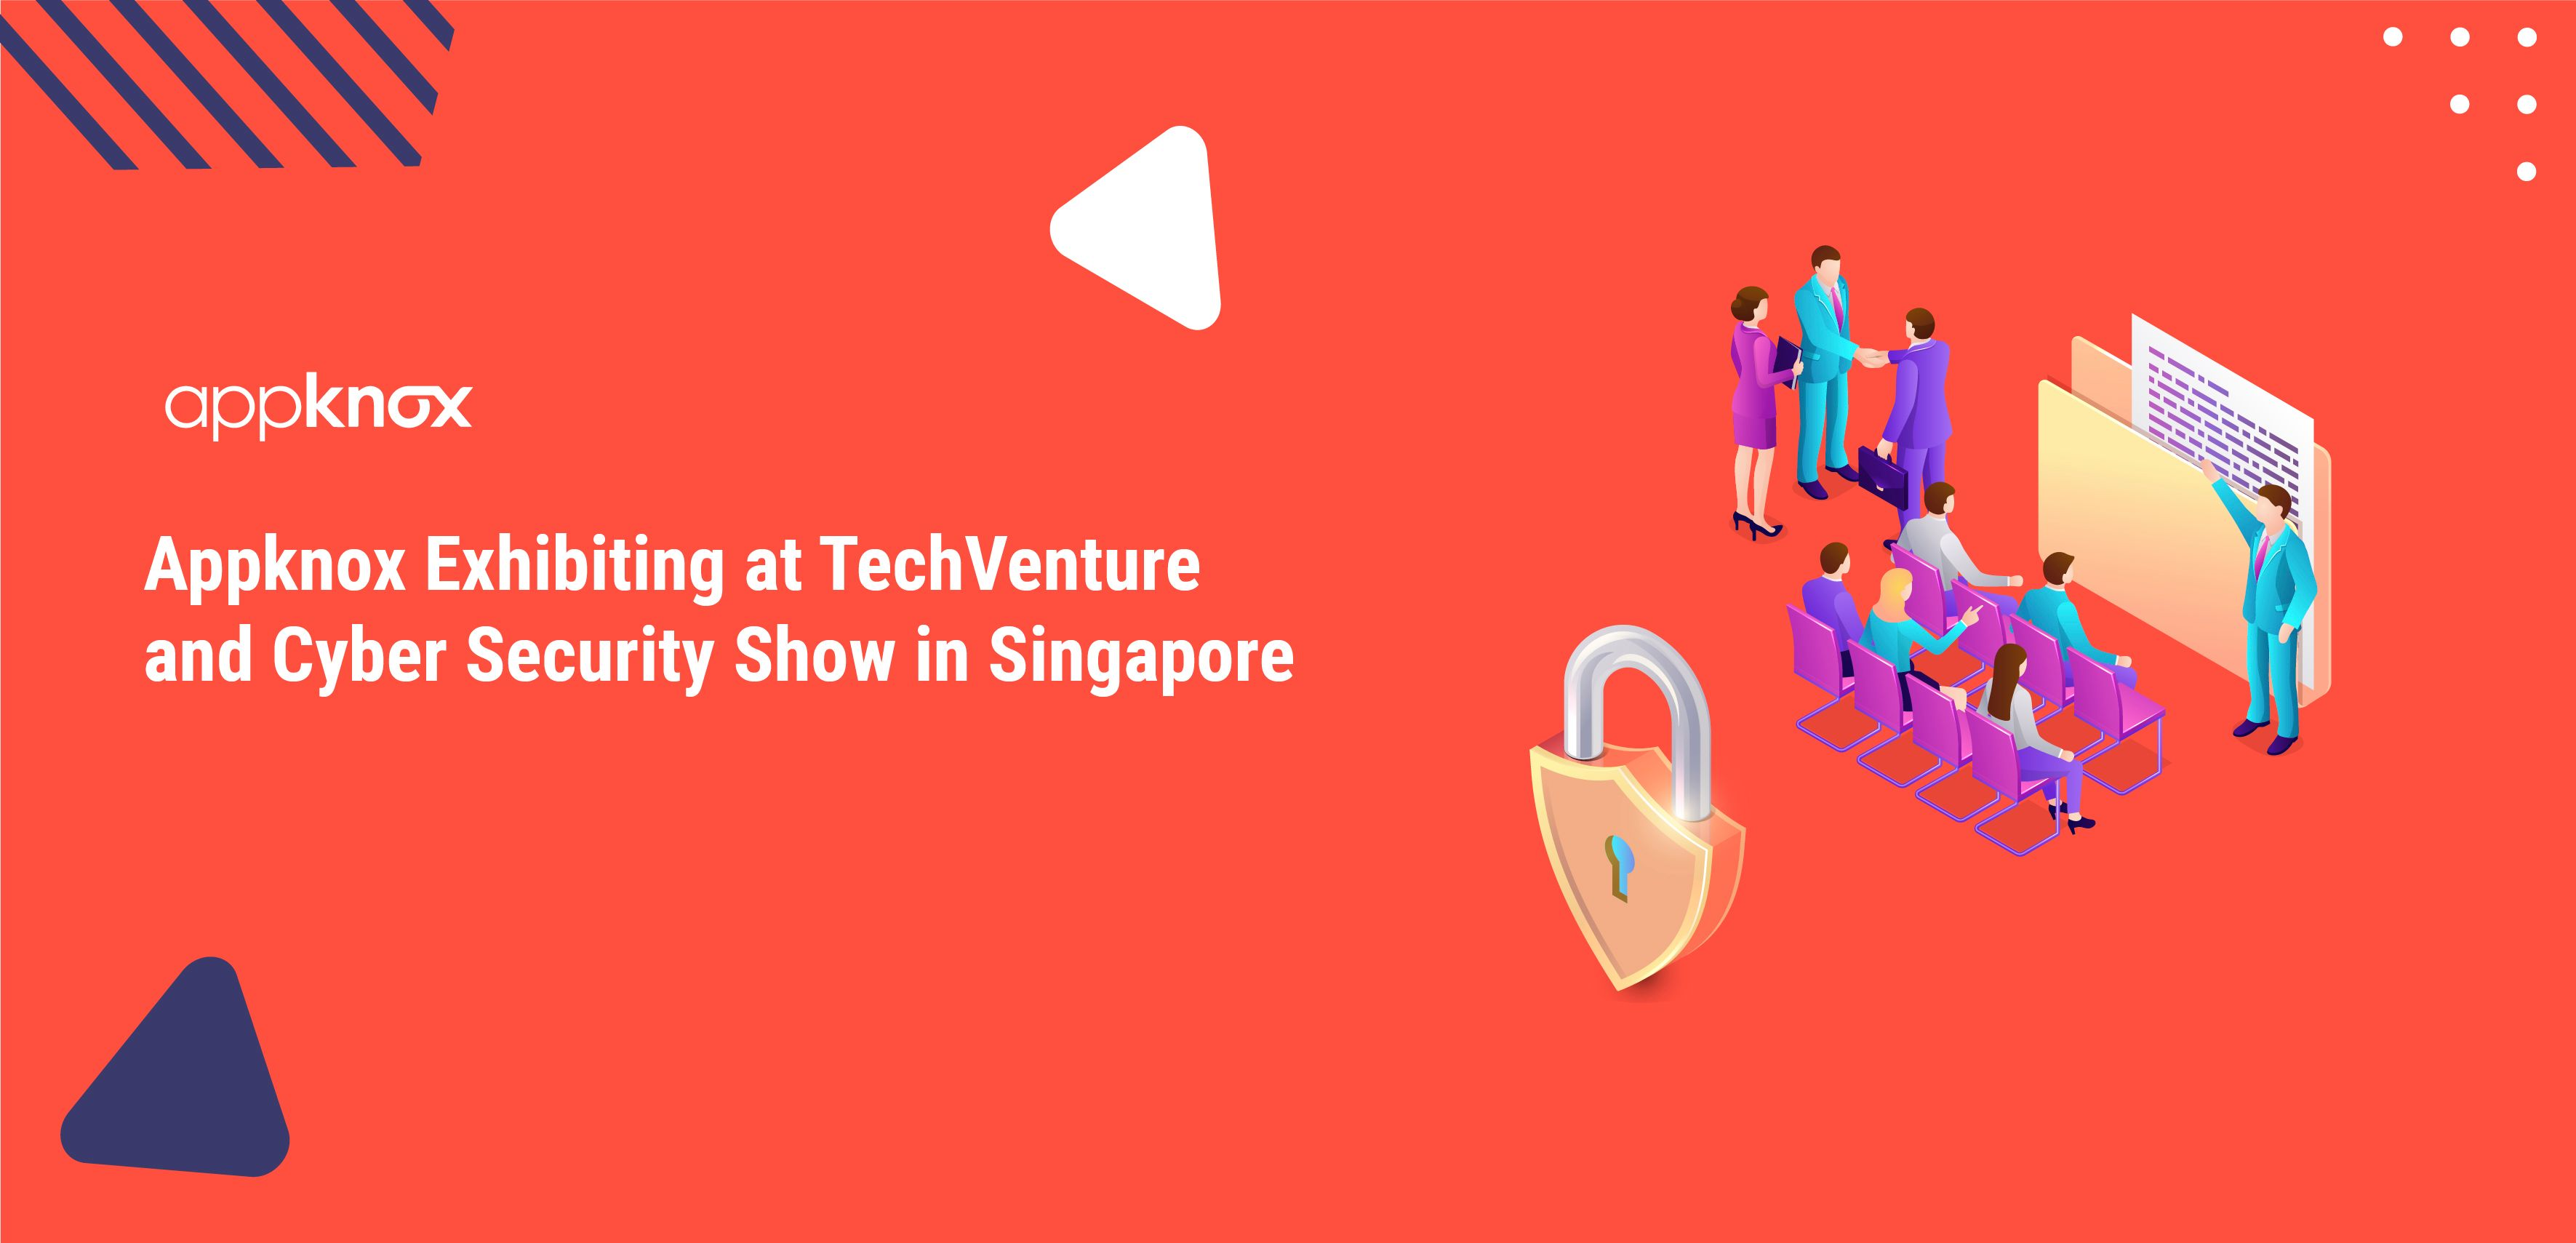 Appknox Exhibiting at TechVenture and Cyber Security Show in Singapore